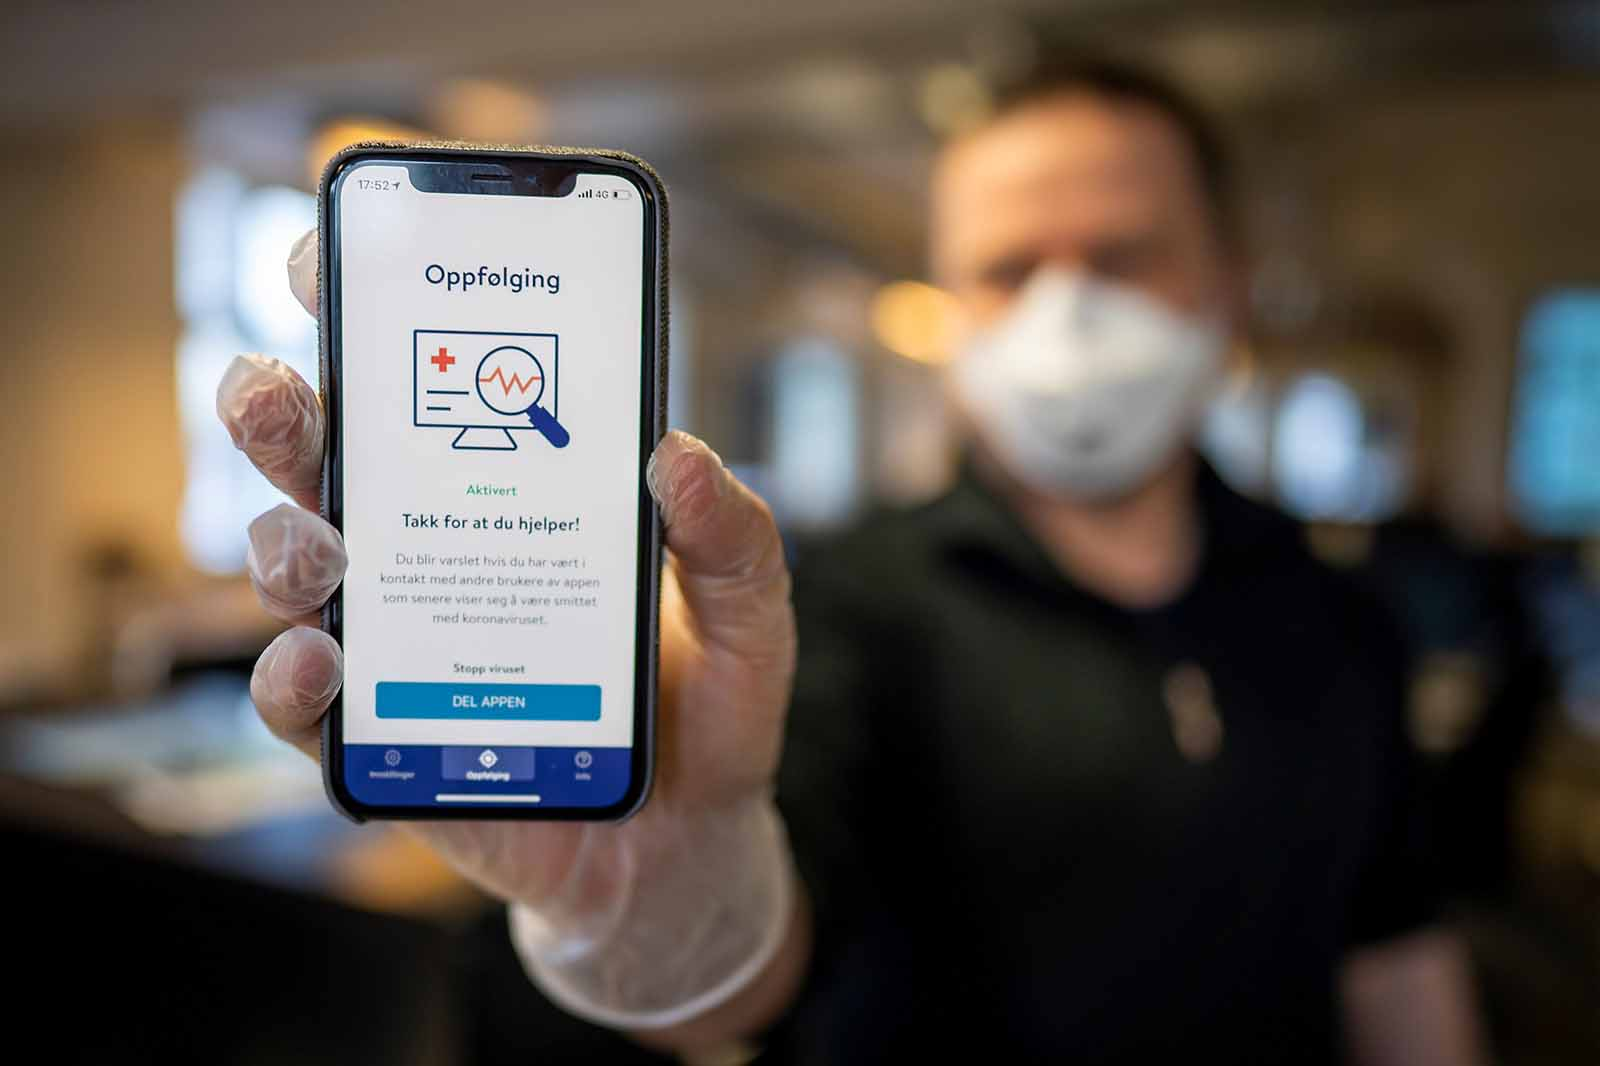 In an attempt to track the coronavirus outbreak, many have developed coronavirus tracing apps. But the apps have a lot of flaws in data collection.